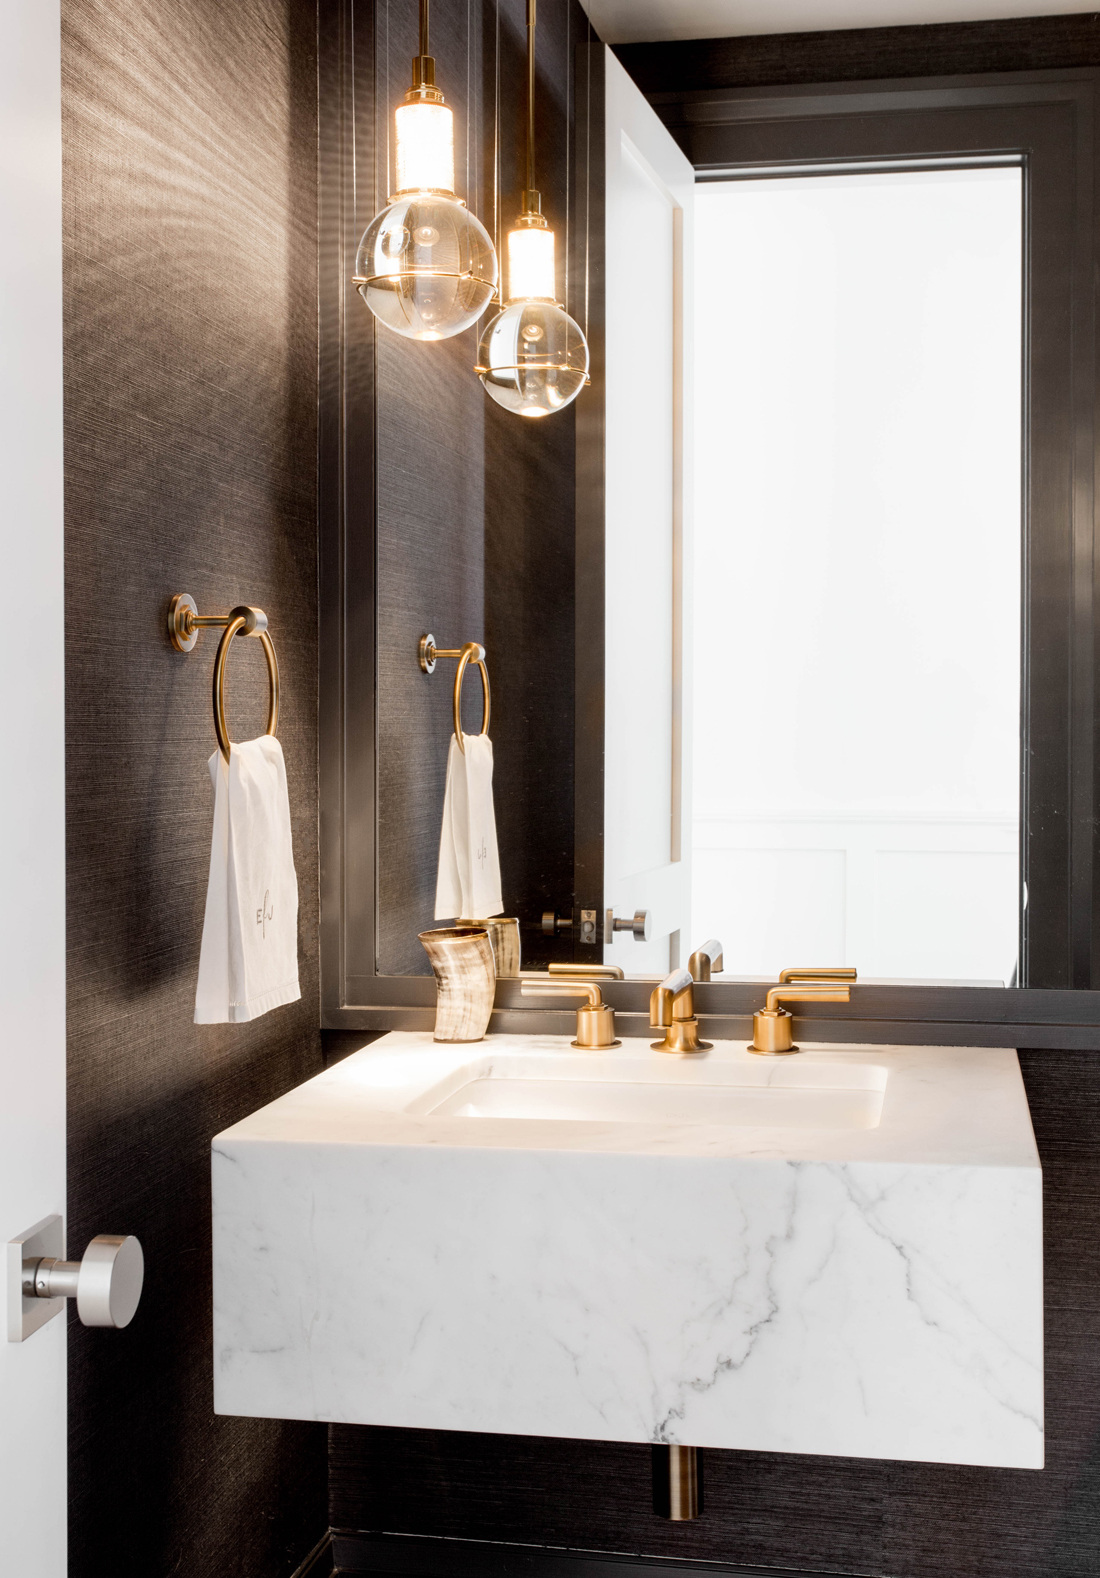 Dark Powder Room by Tamara Magel | DPAGES